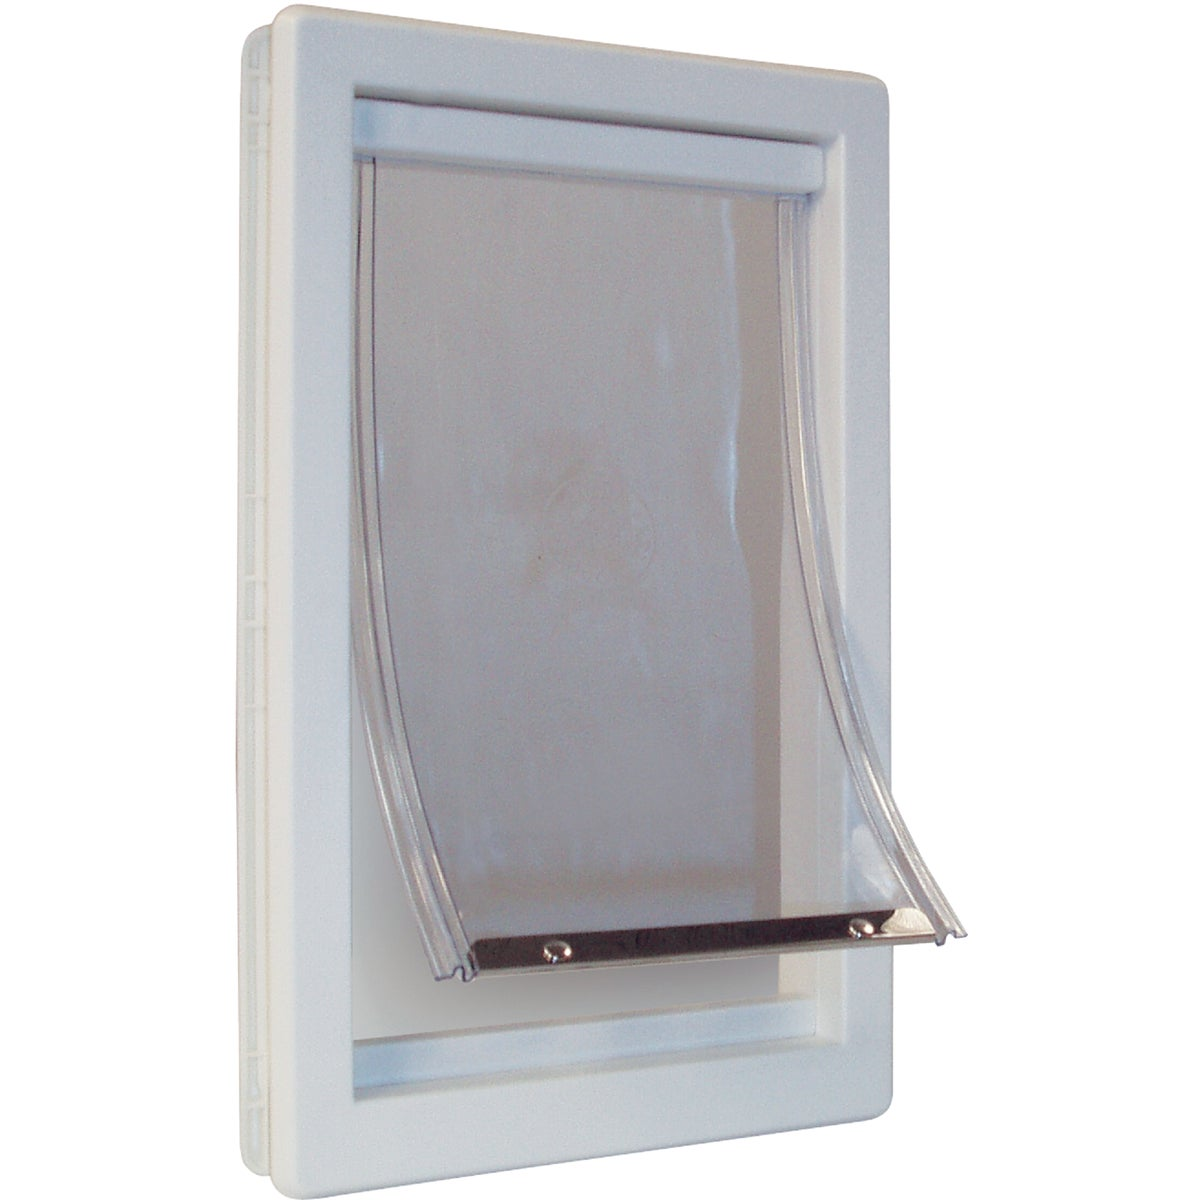 XL PLASTIC PET DOOR